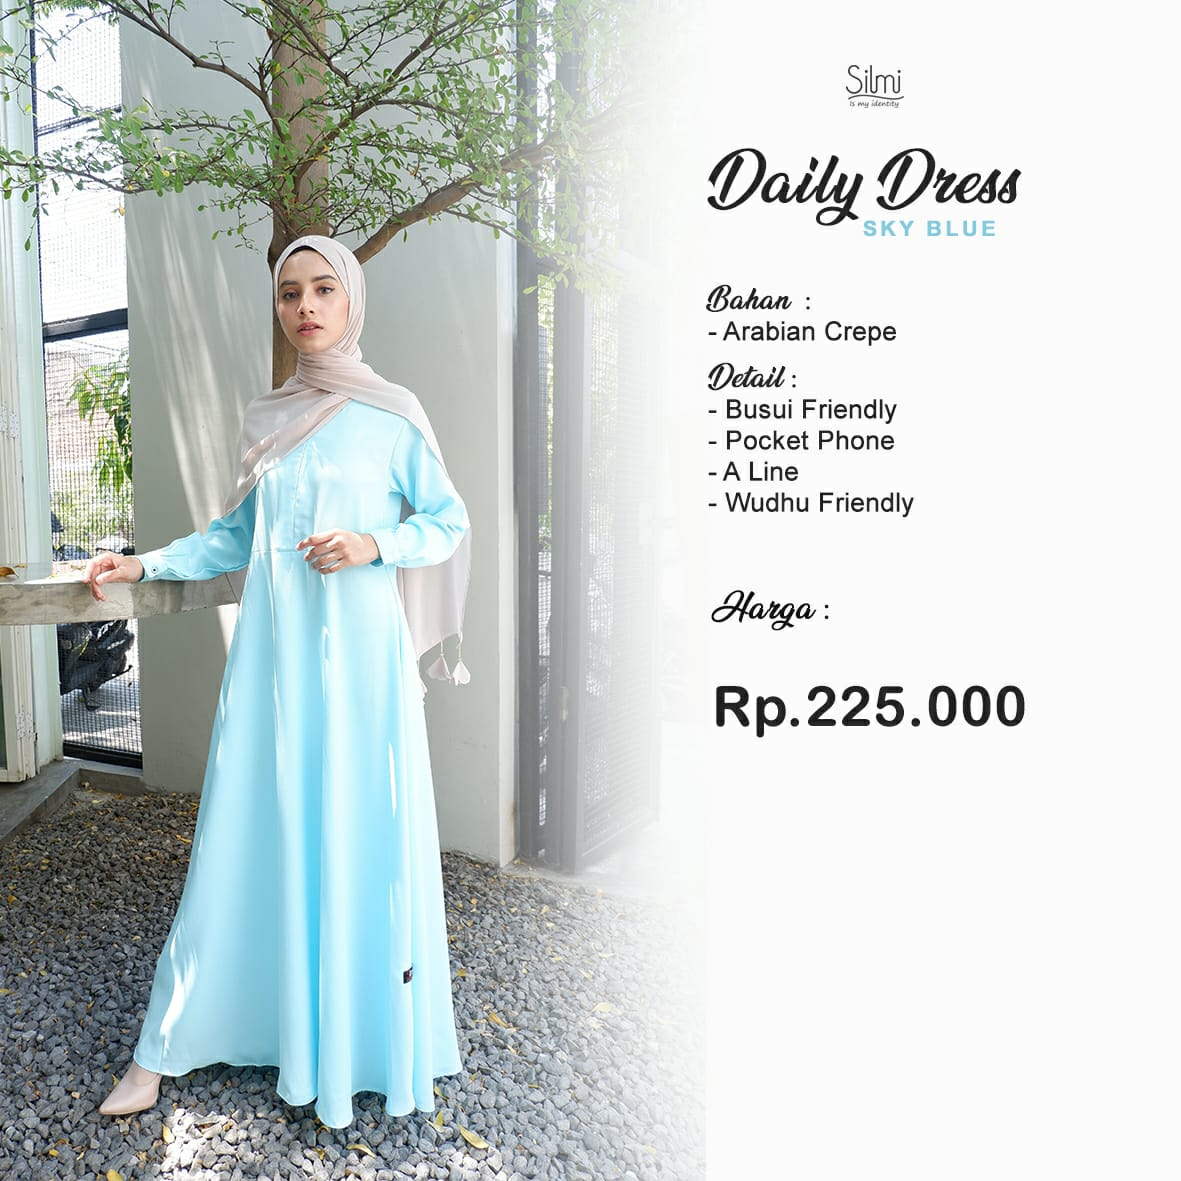 Silmi Daily Dress Arabian Crepe Sky Blue